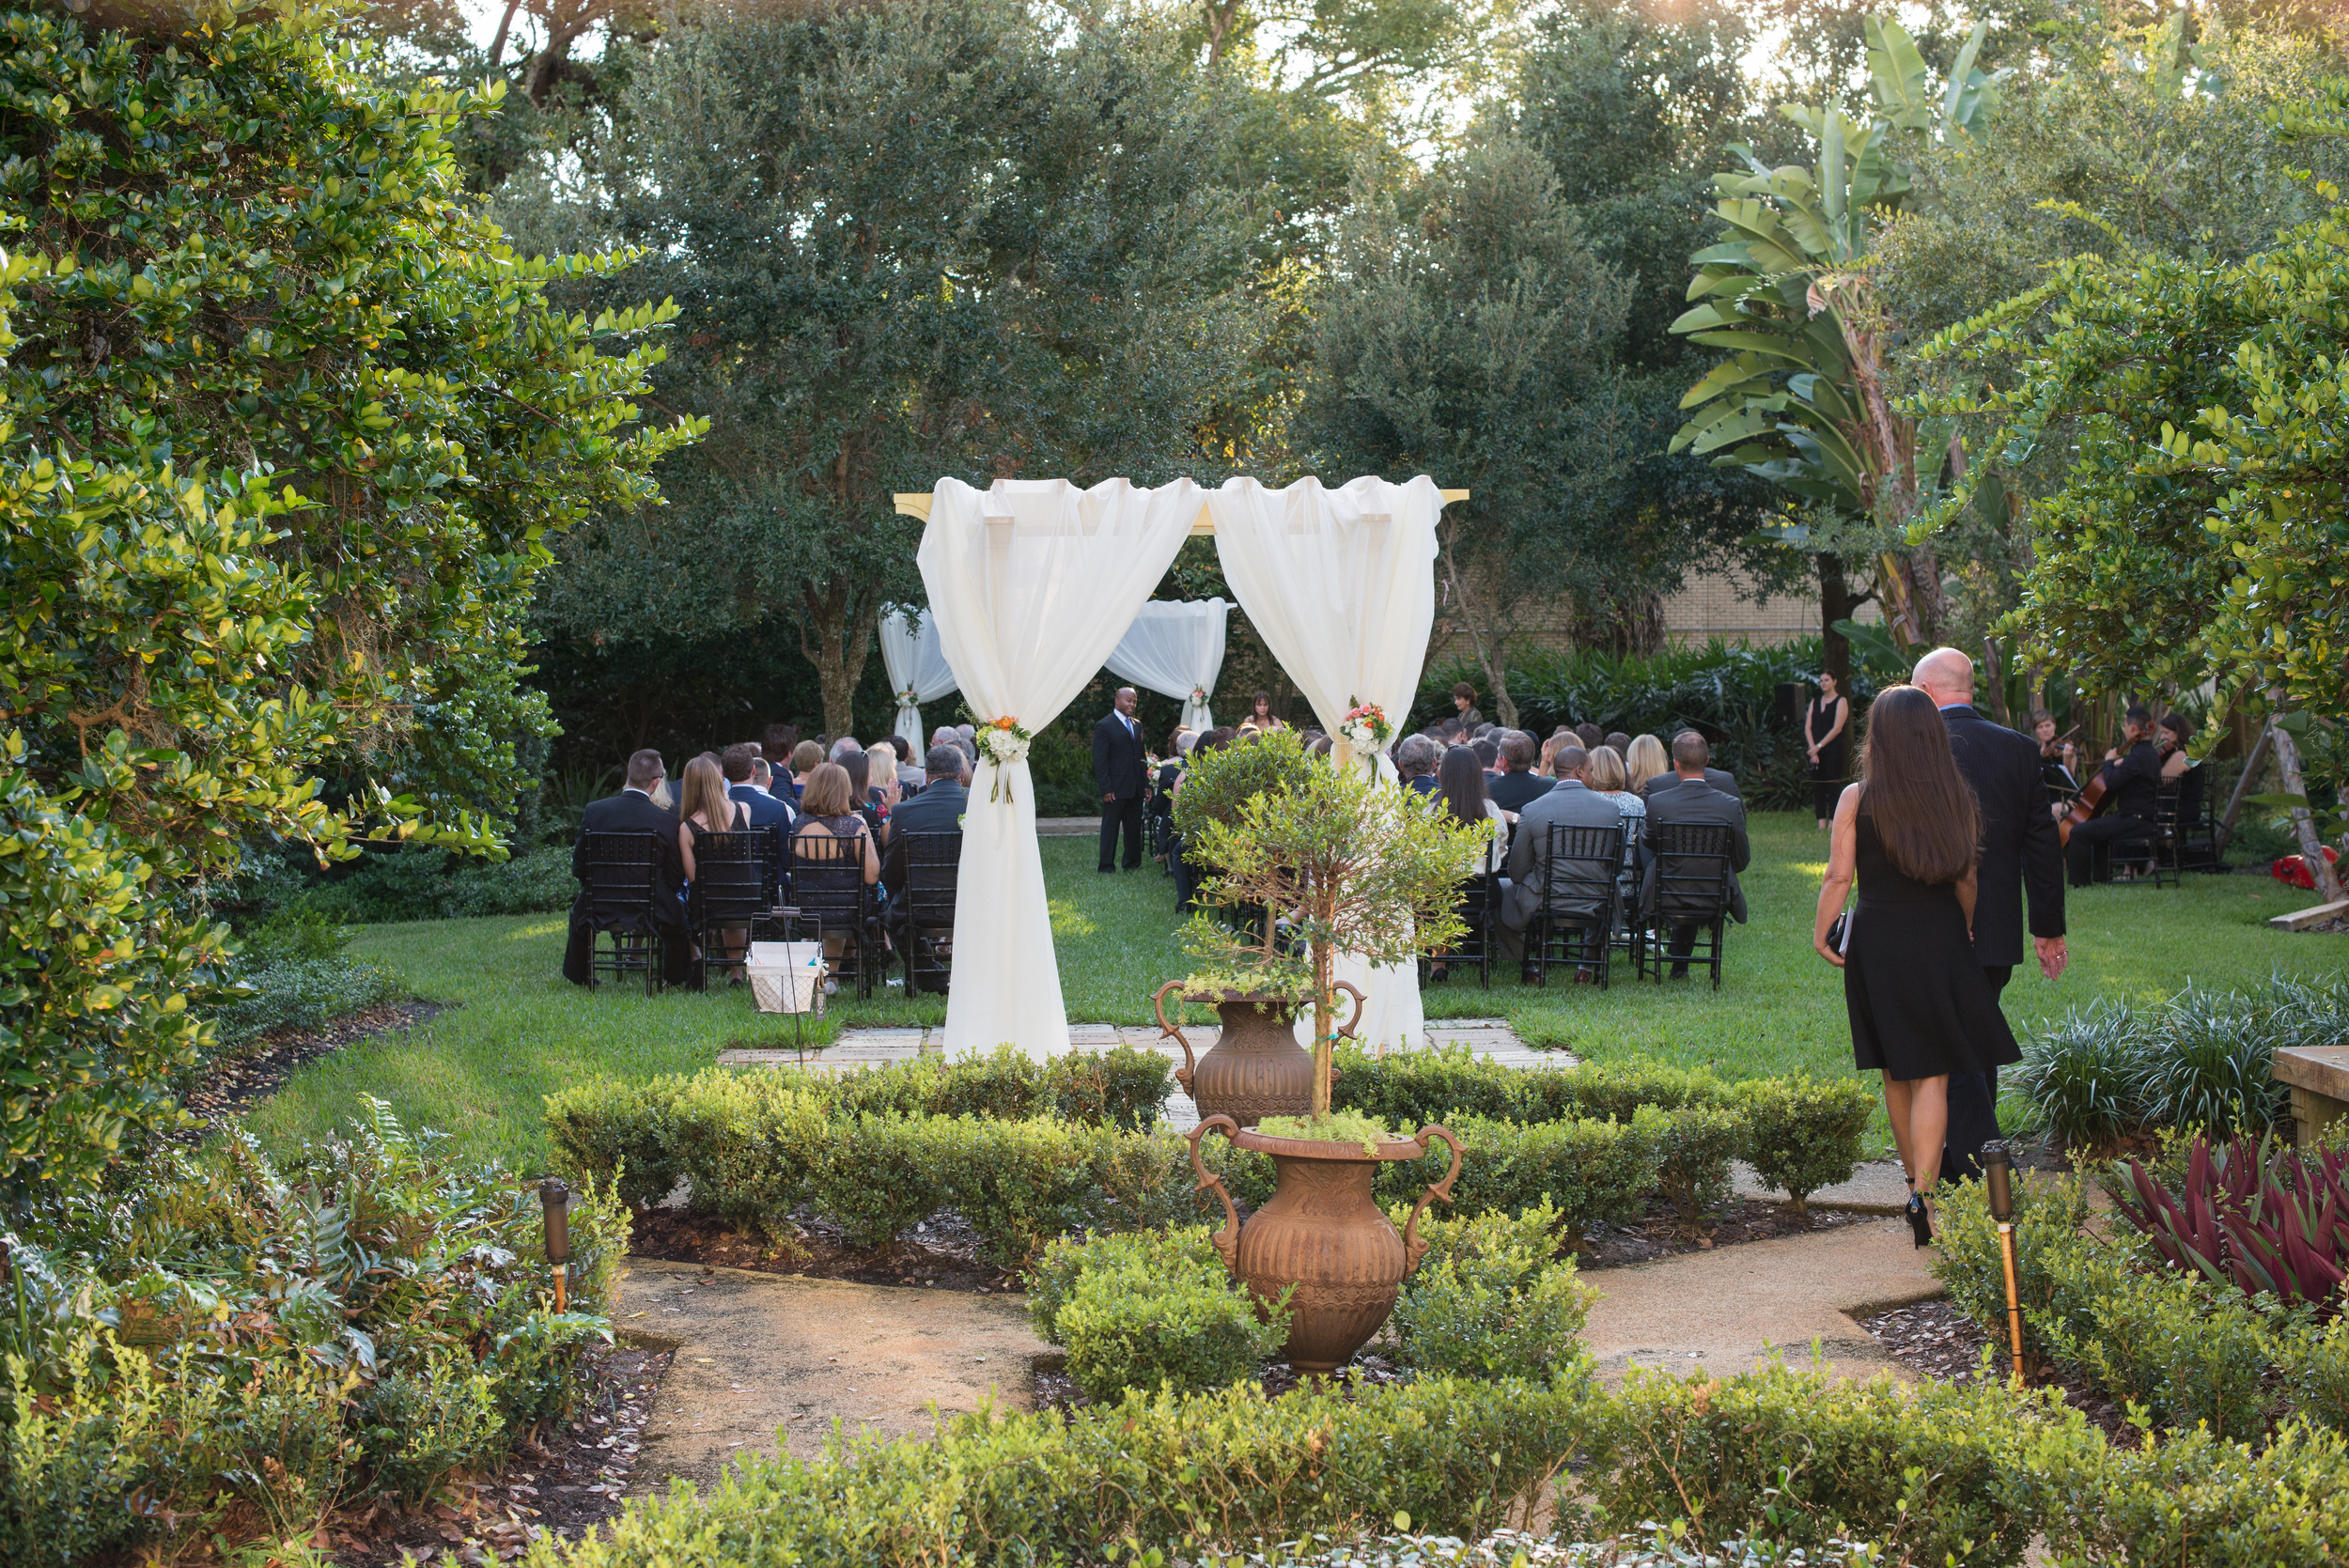 The lush garden was the perfect ceremony setting